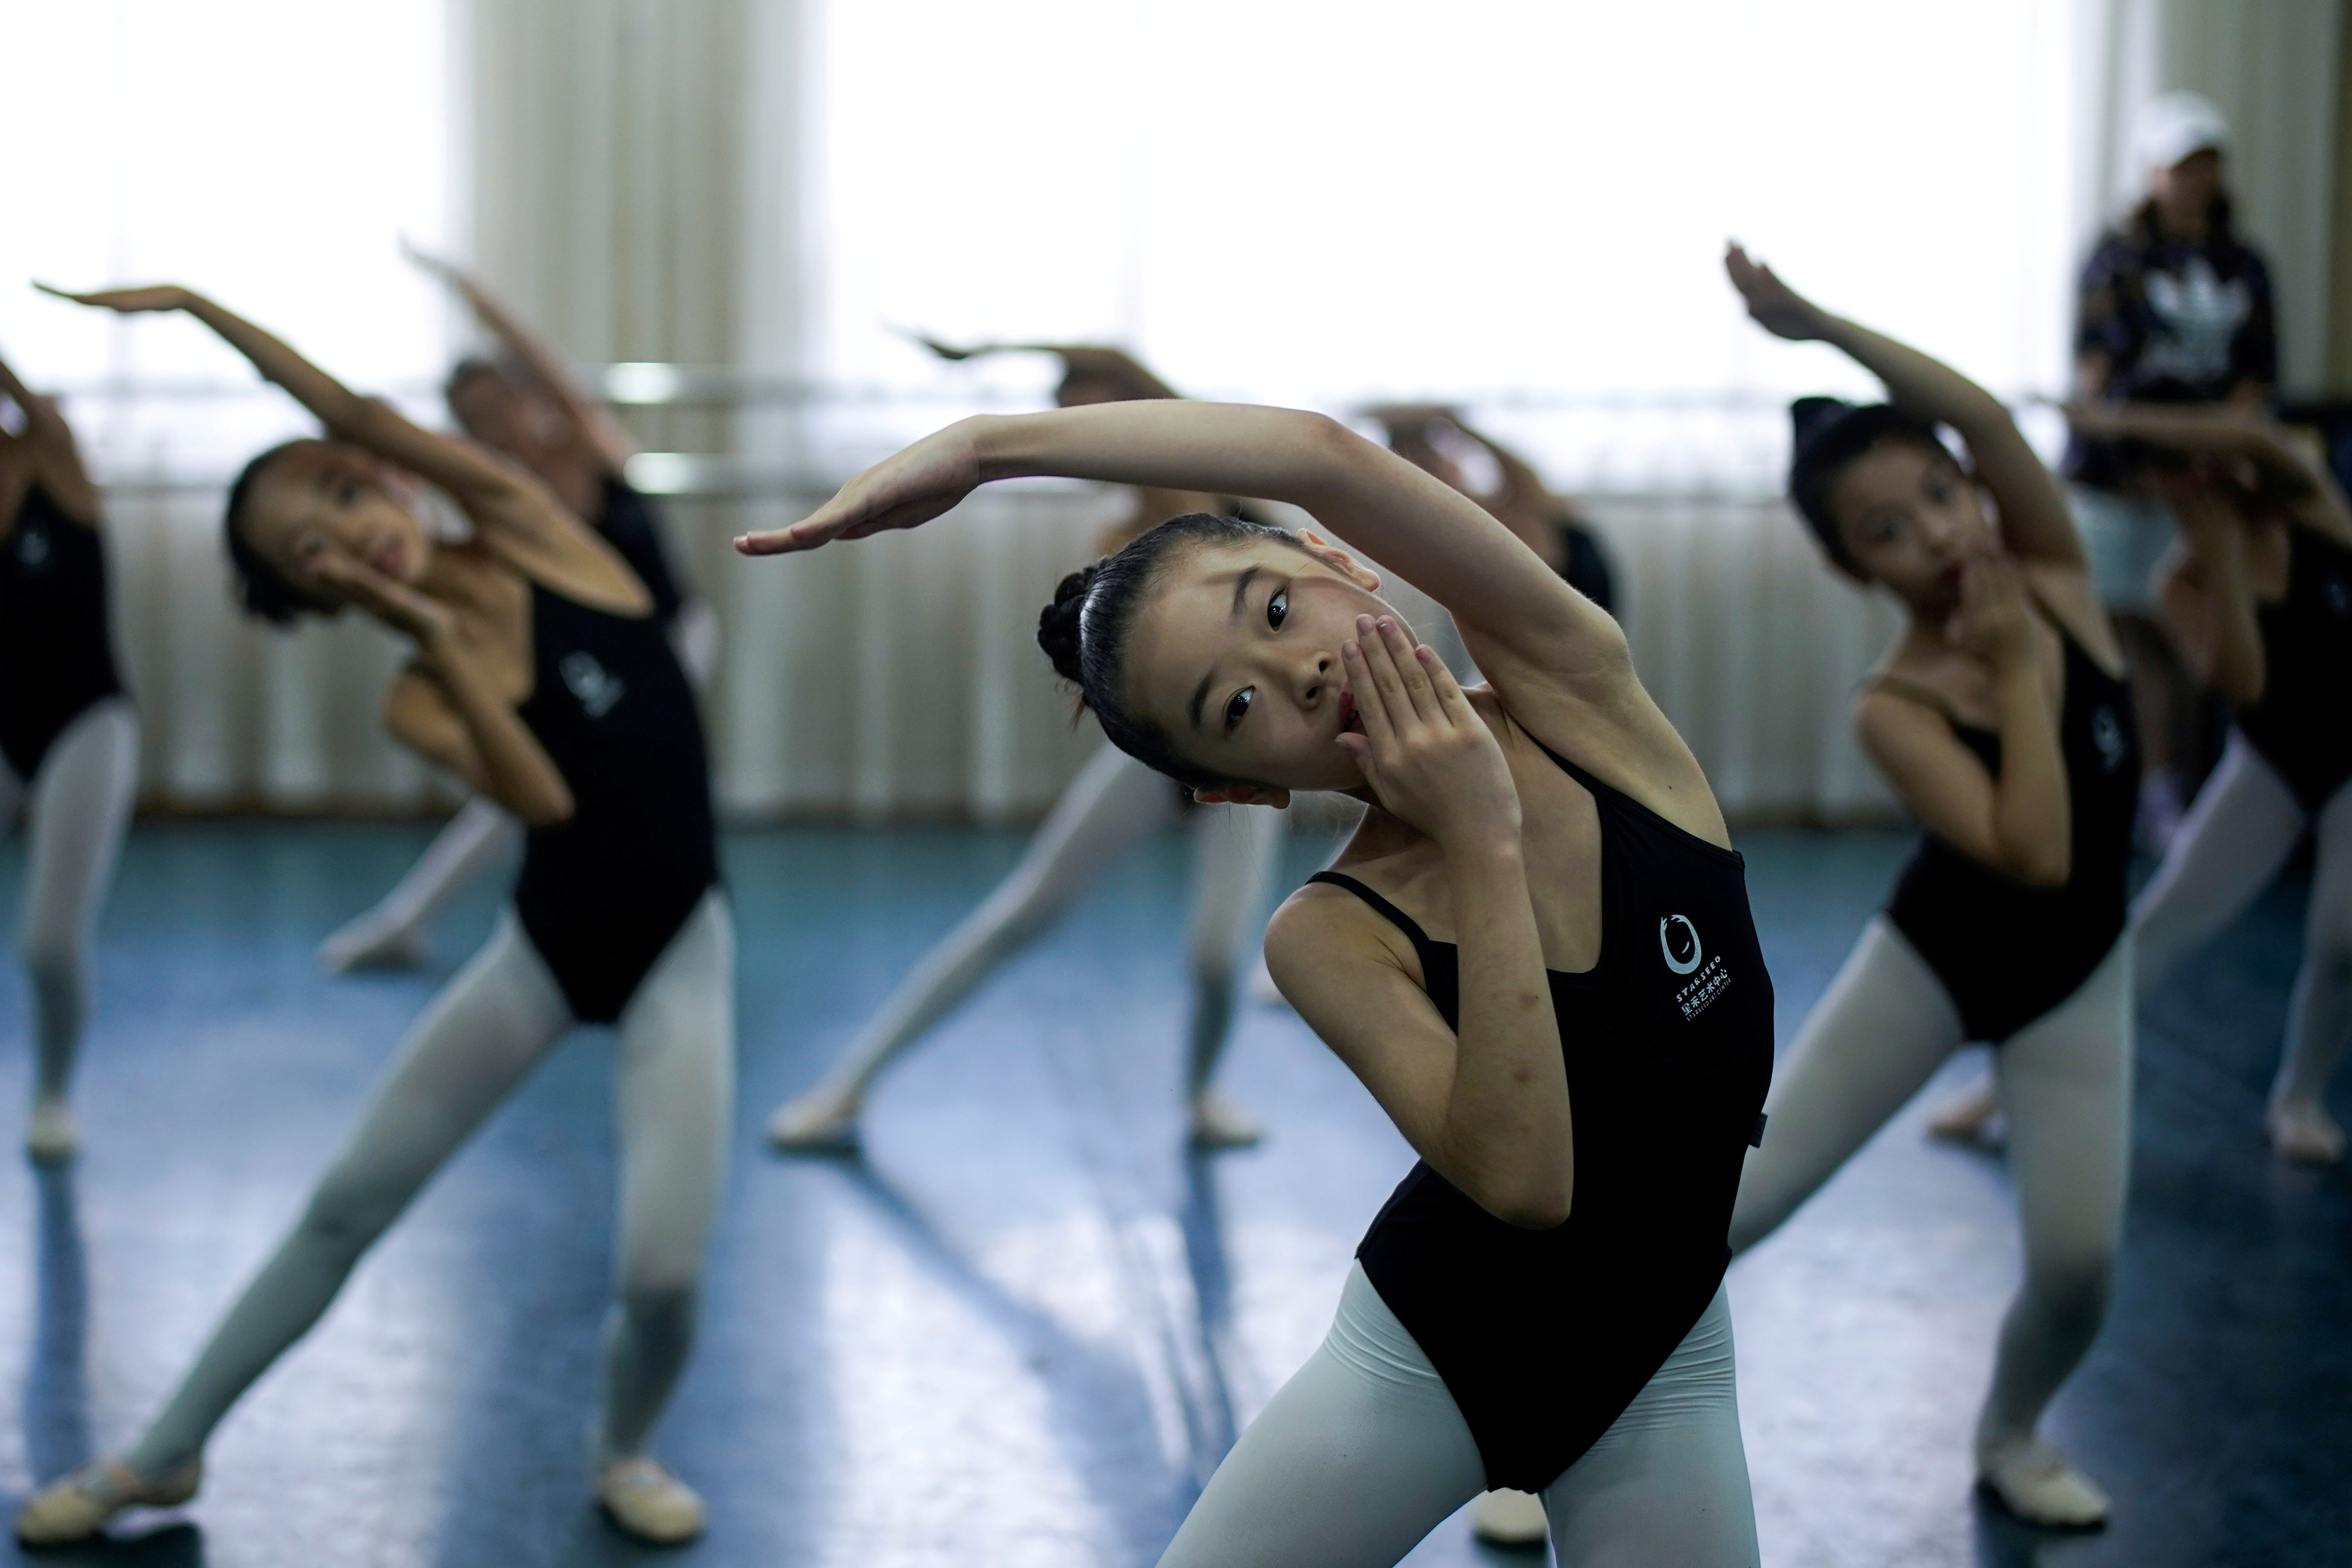 Students dance at Changchun Street Primary School of Wuhan during a government-organized media tour following the coronavirus disease (COVID-19) outbreak, in Wuhan, Hubei province, China, September 4, 2020. REUTERS/Aly Song - RC2FRI938279